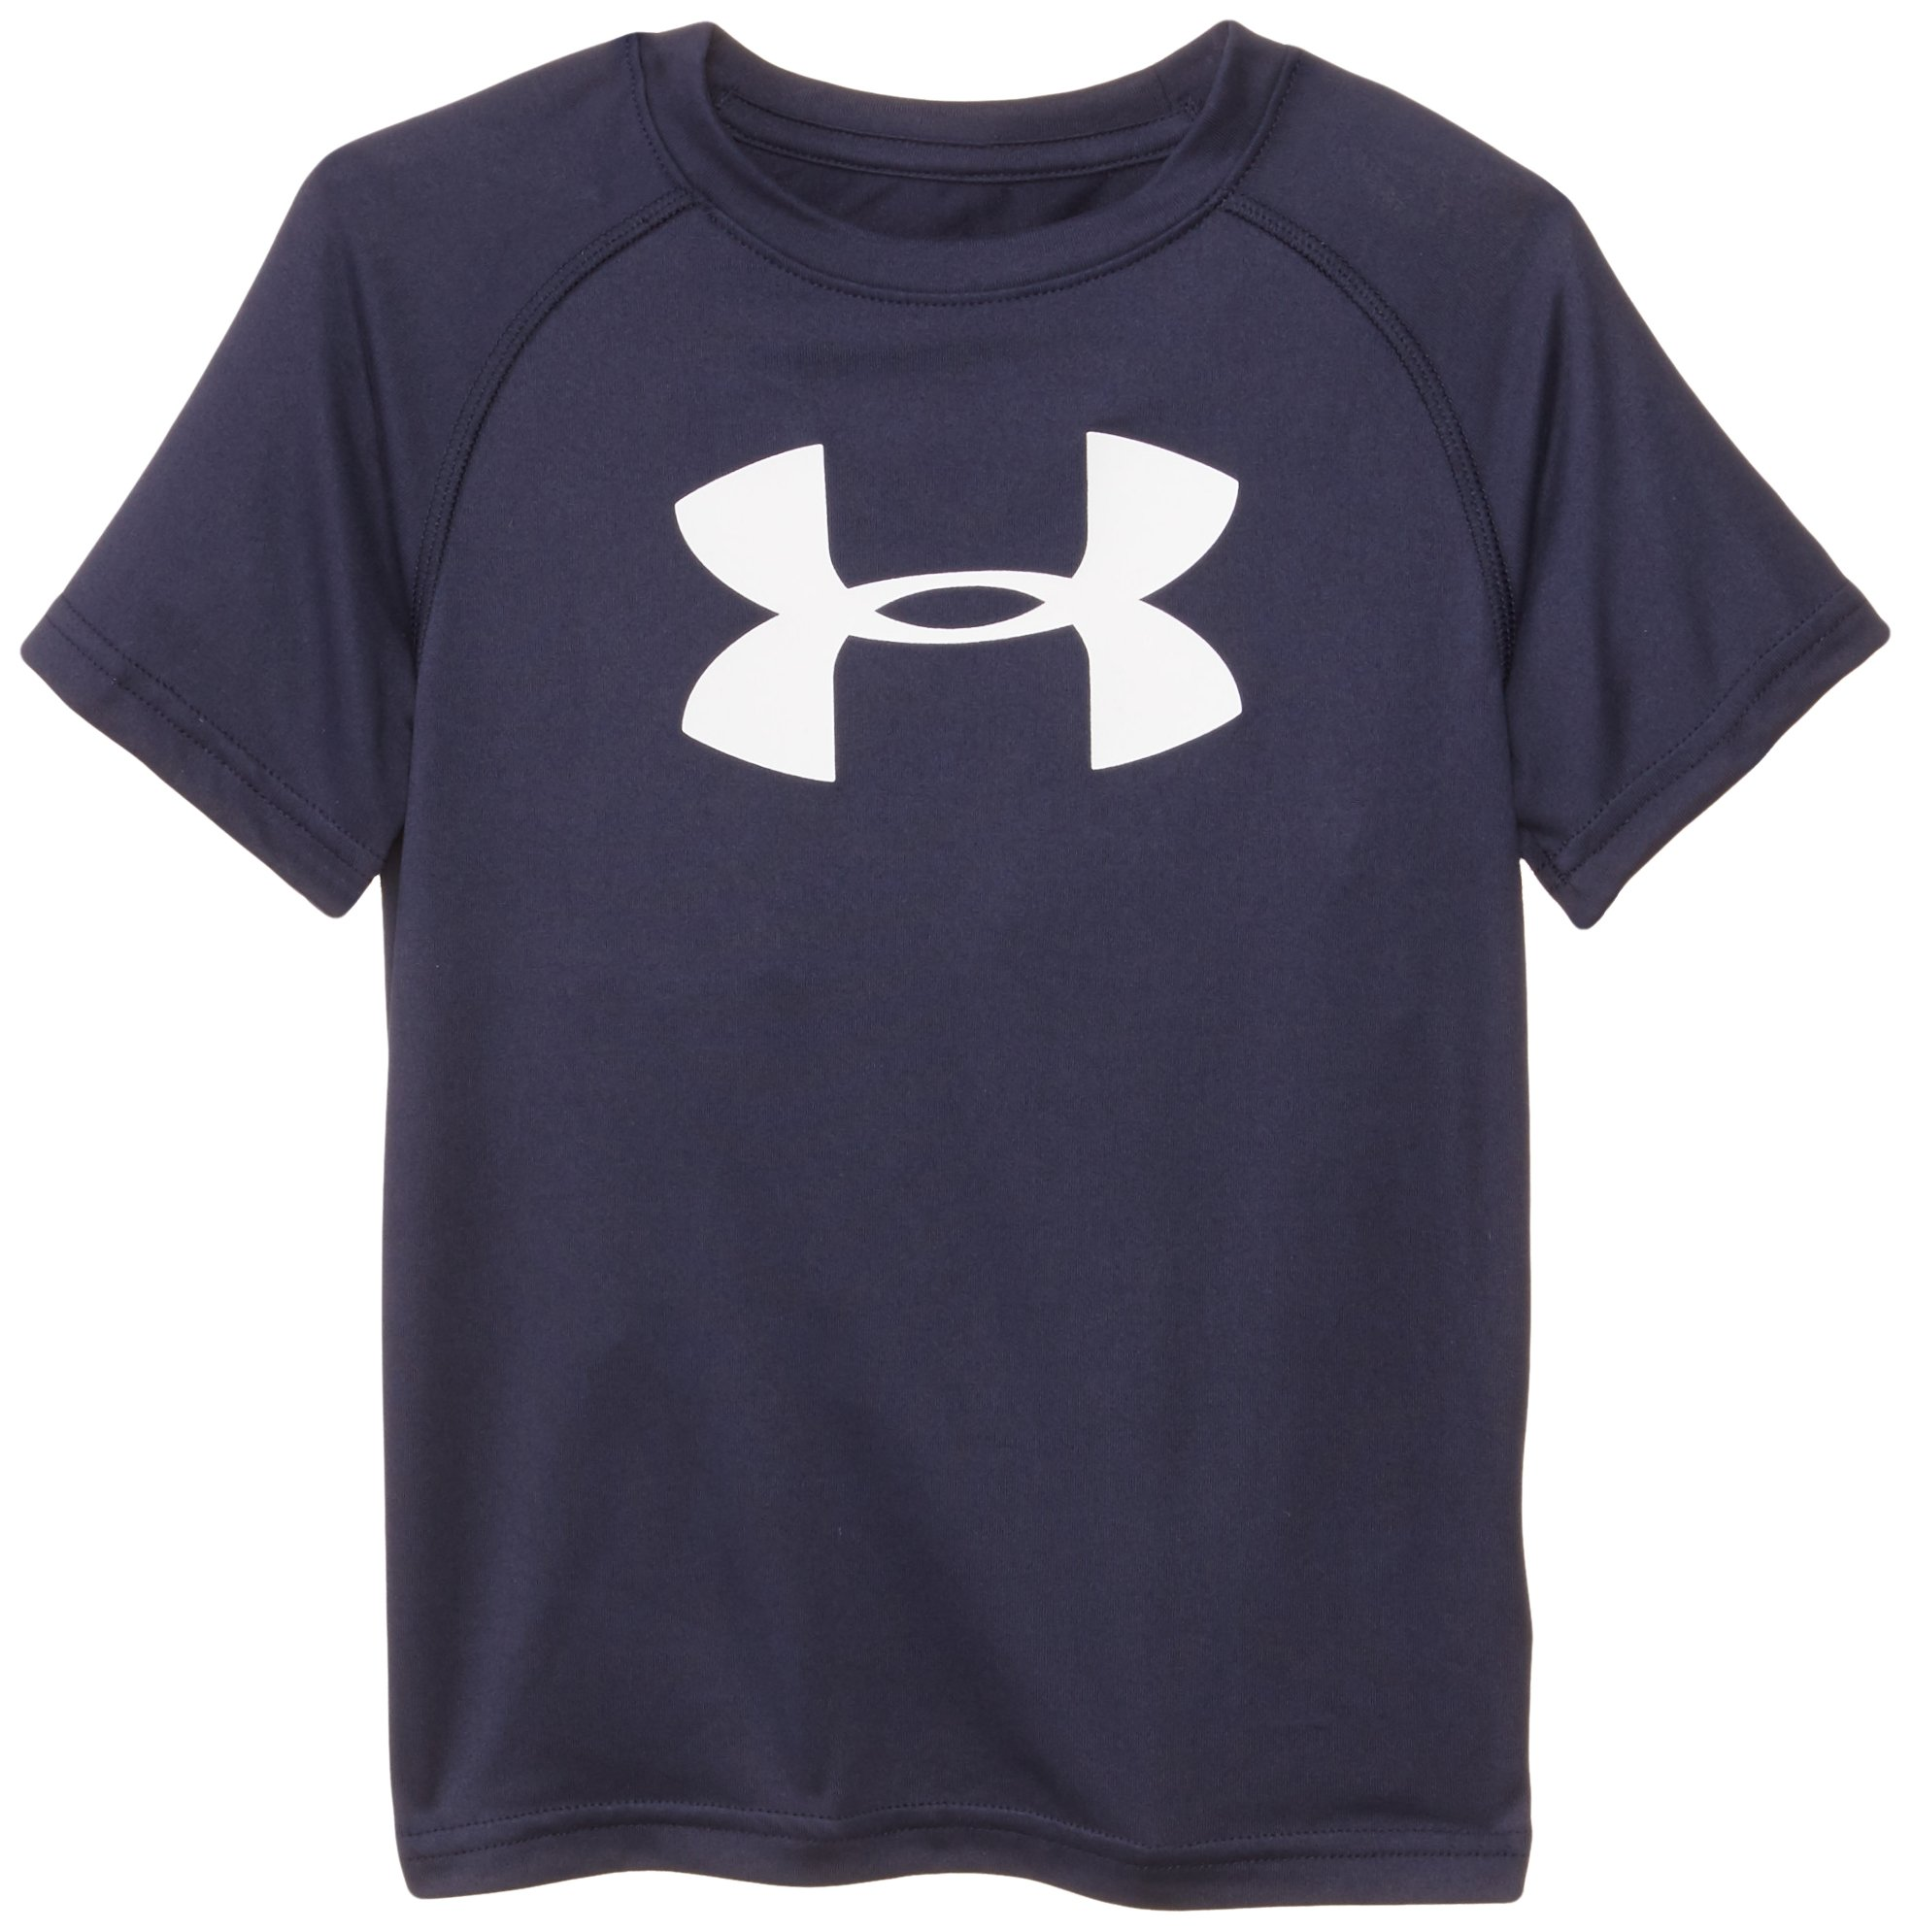 Under Armour Toddler Boys' Big Logo Short Sleeve Tee Shirt, Midnight Navy, 3T by Under Armour